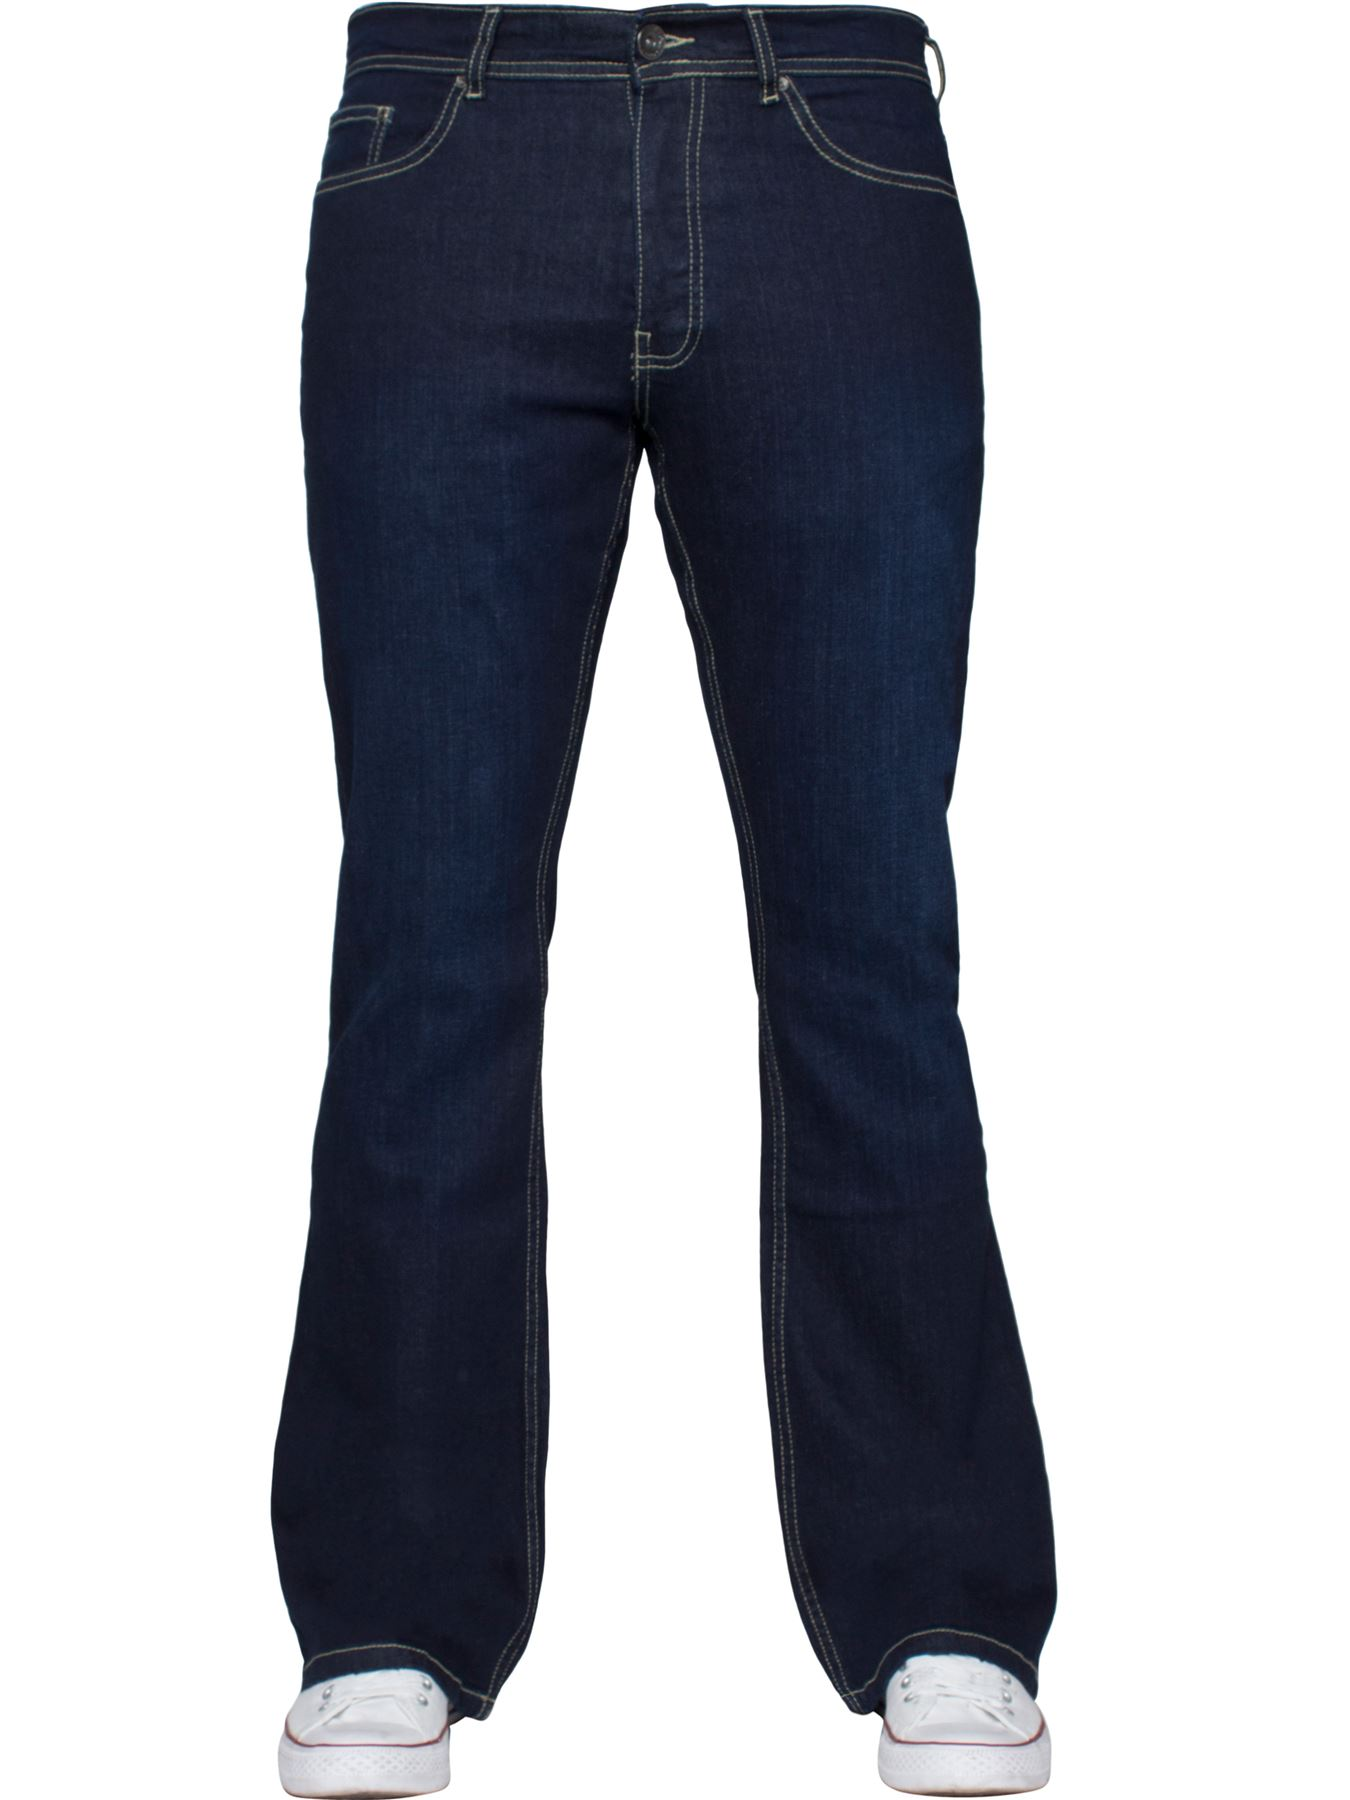 Kruze-Mens-Basic-Straight-Leg-Bootcut-Stretch-Jeans-Denim-Regular-Big-Tall-Waist thumbnail 57